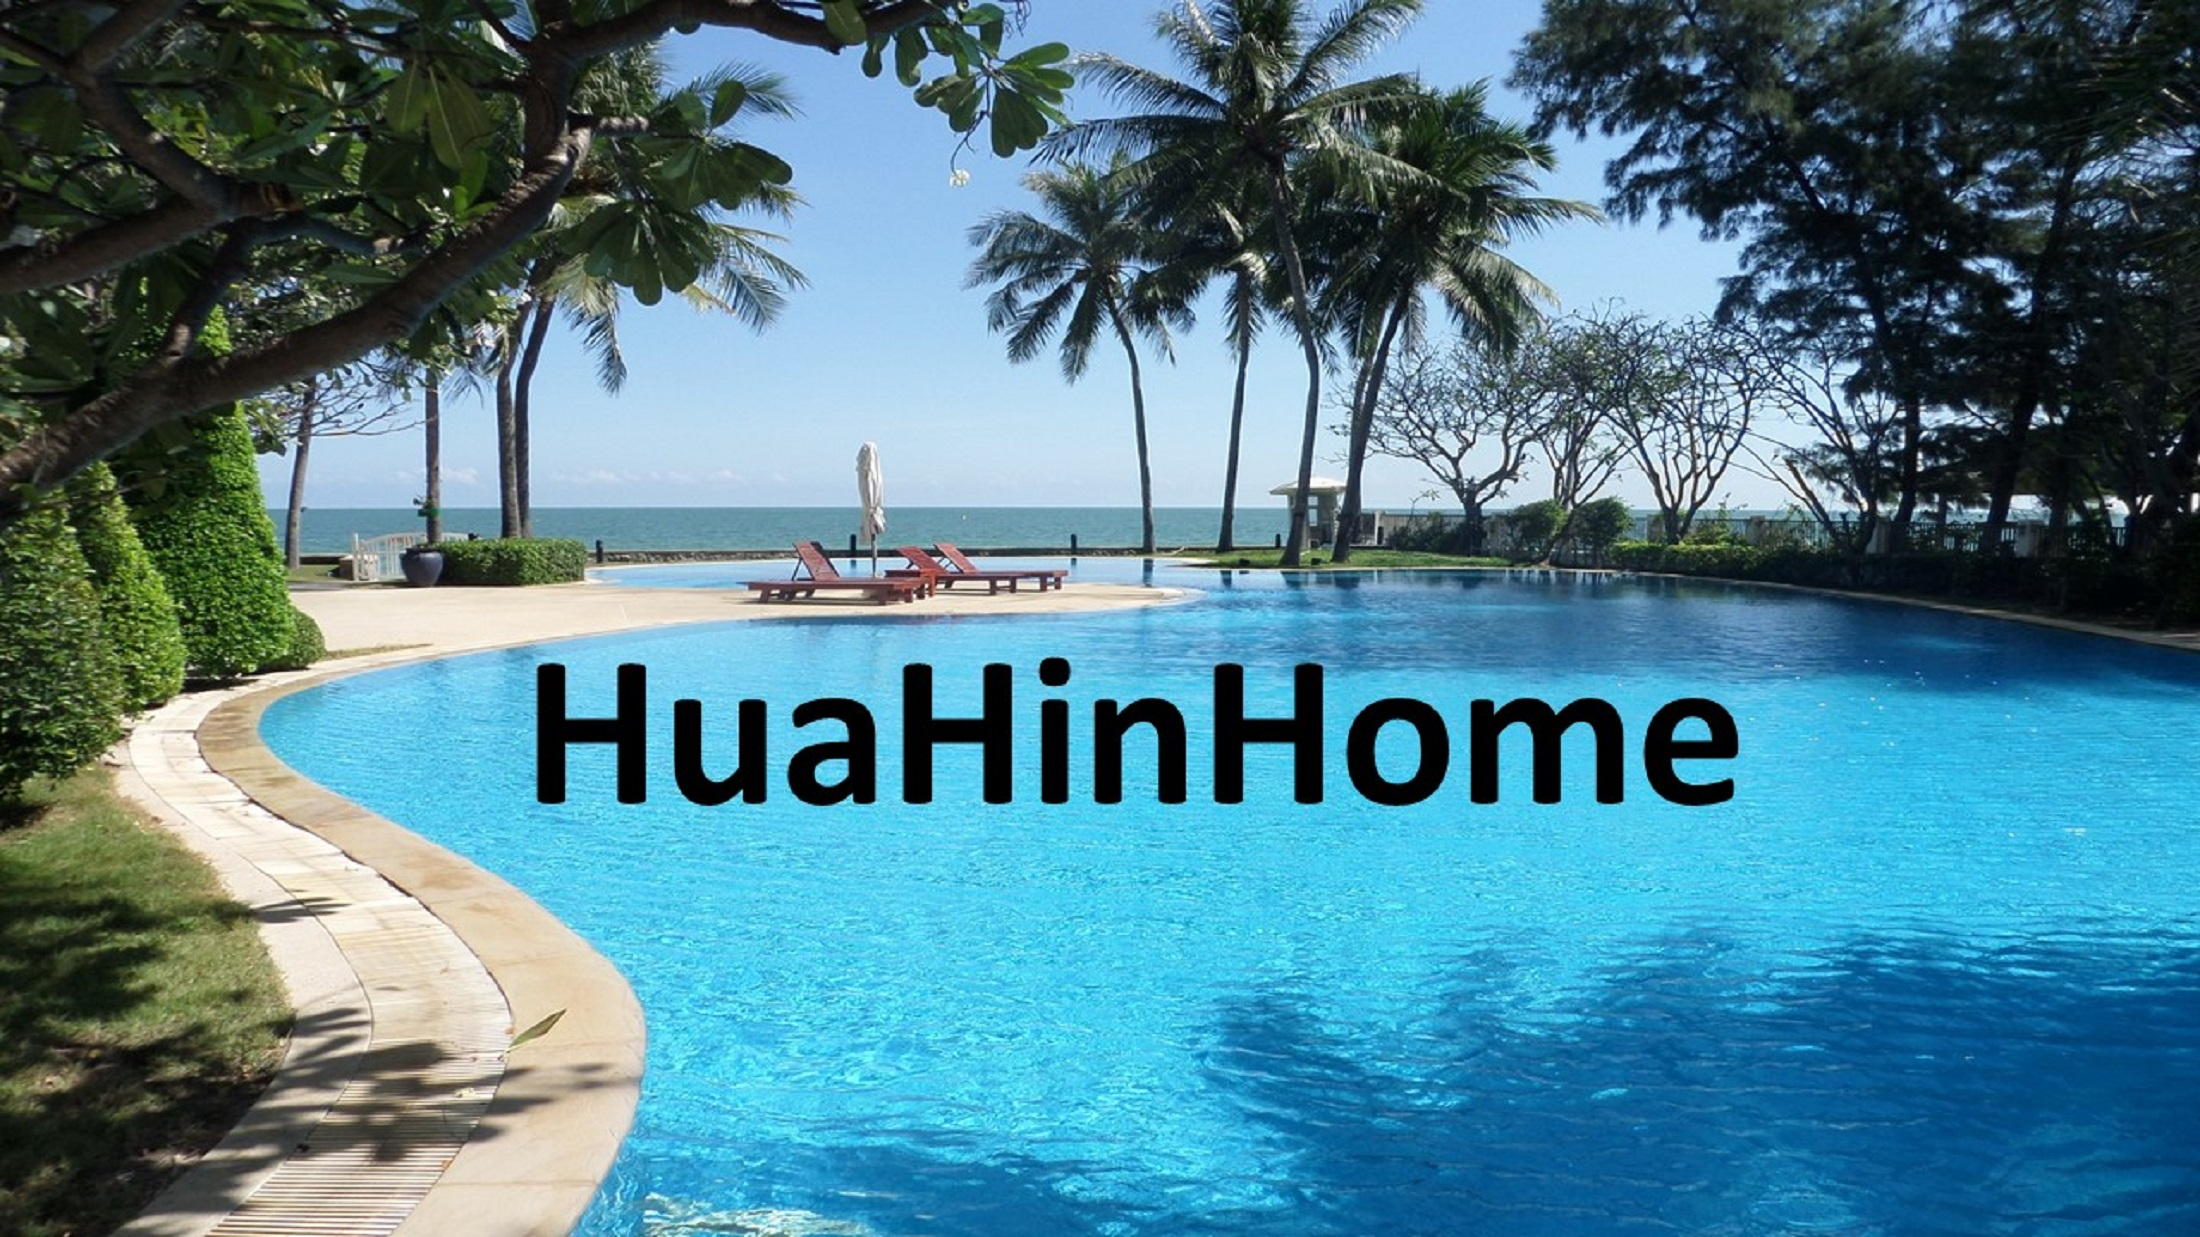 Huahinhome | Huahinhome   Search results